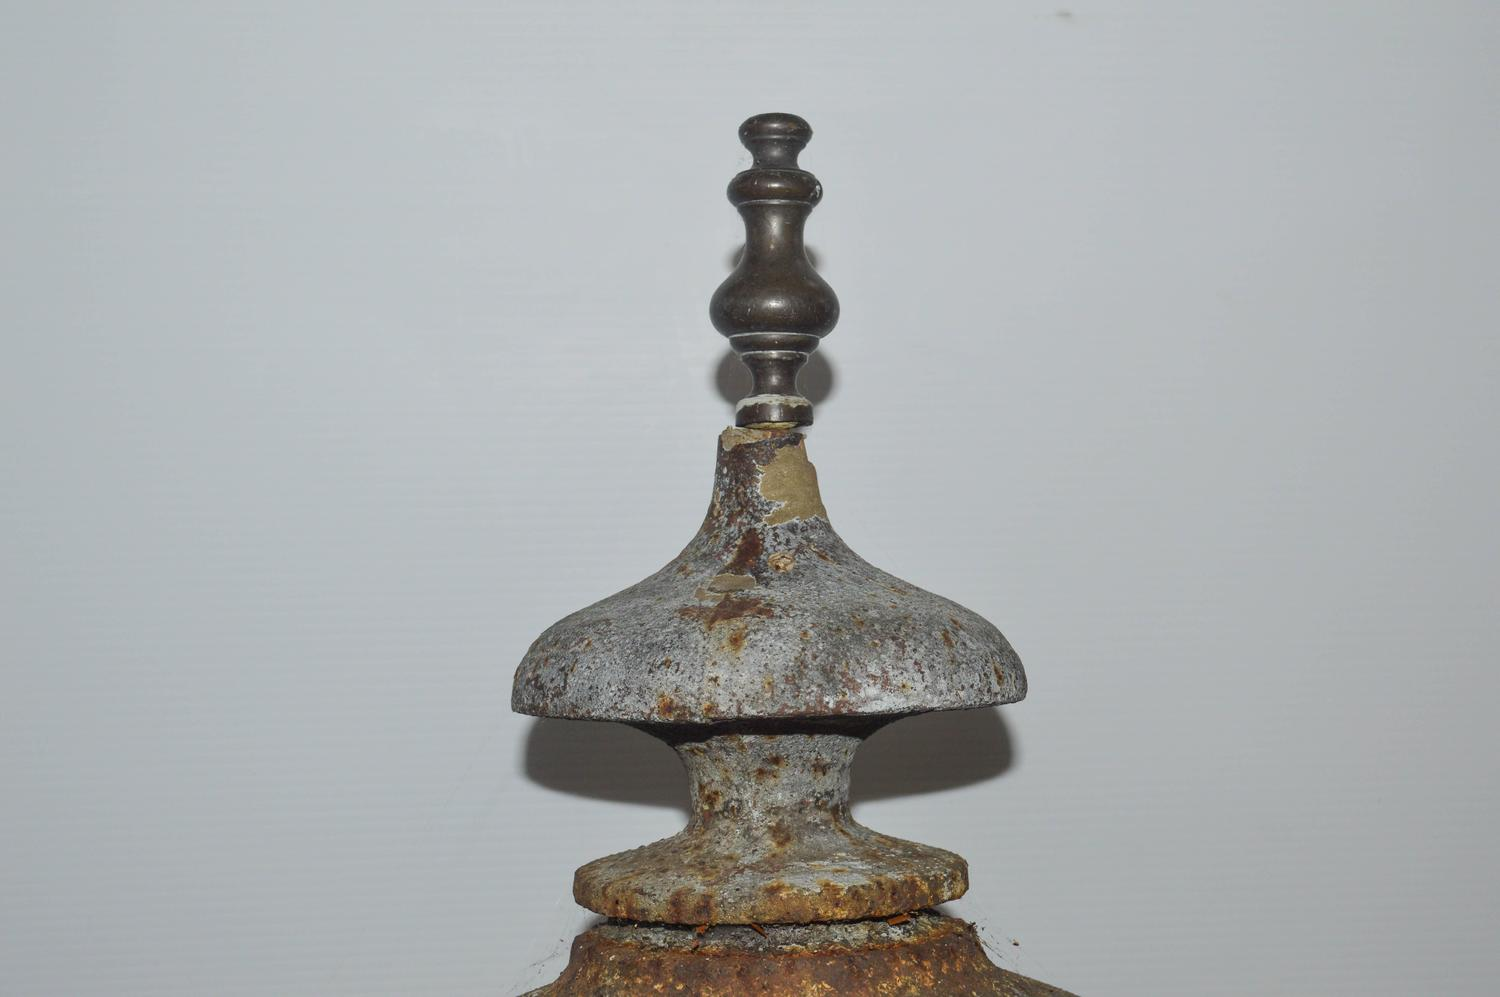 Cast Iron Conductor : Cast iron lightning rod for sale at stdibs